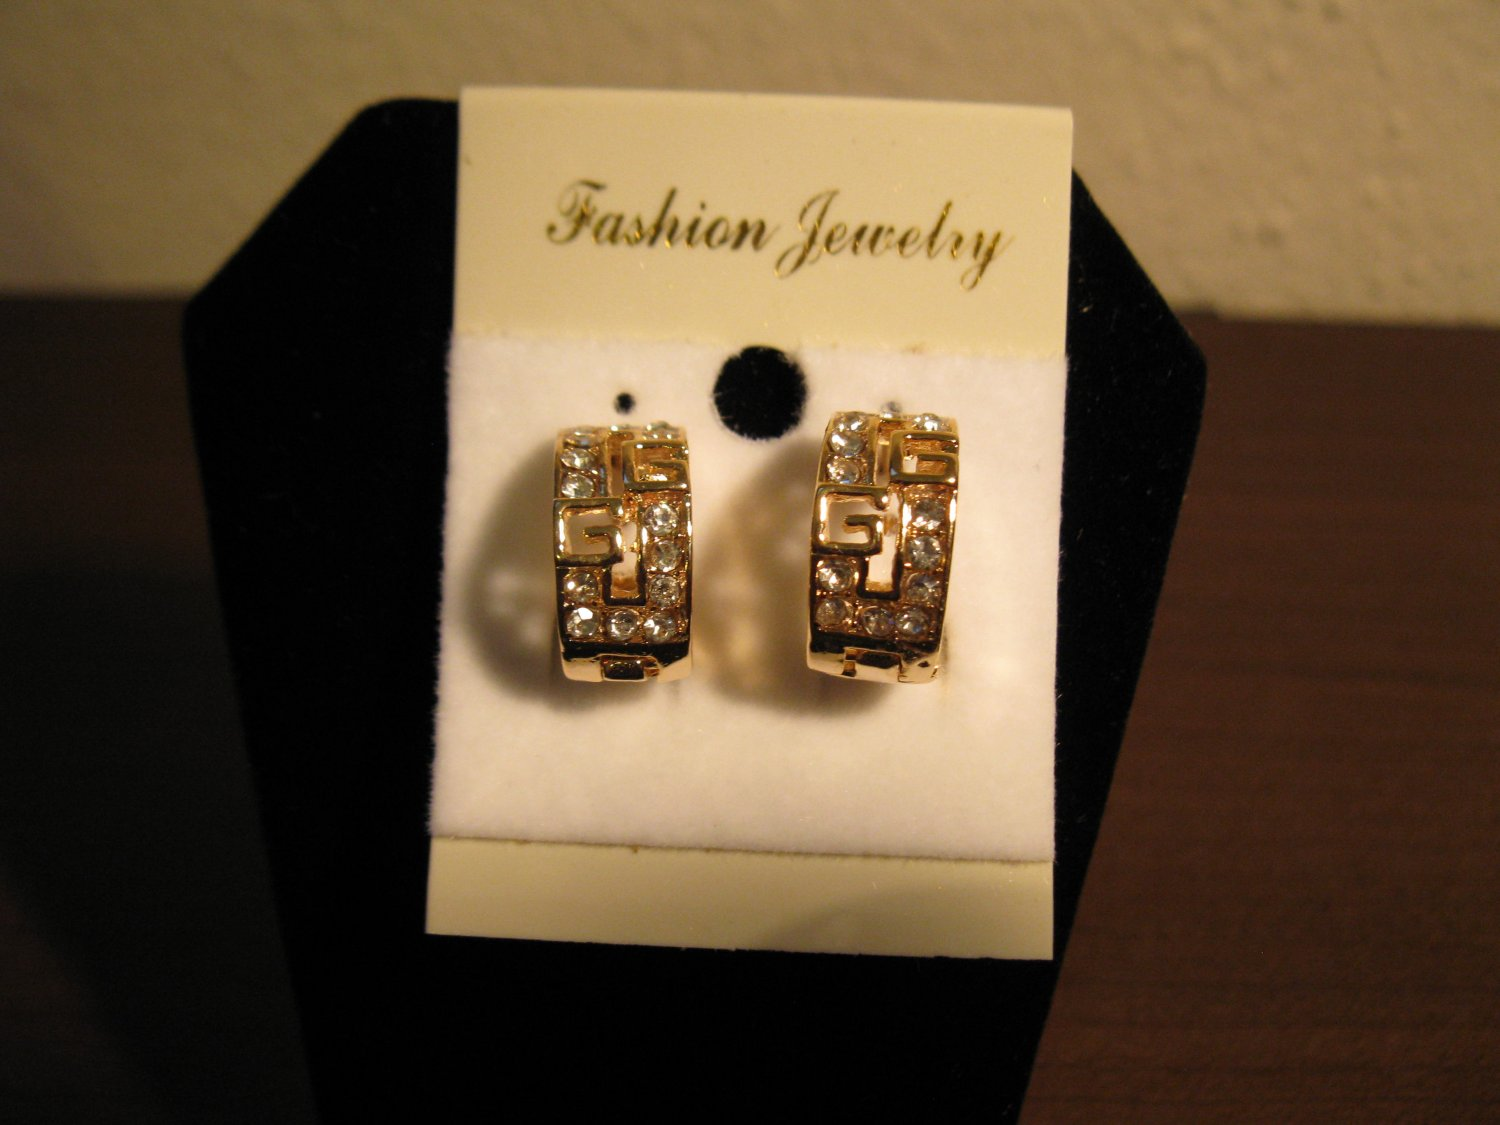 Stunning Gold CZ Hoop Earrings Pierced Earrings 0.5 in New! #D765